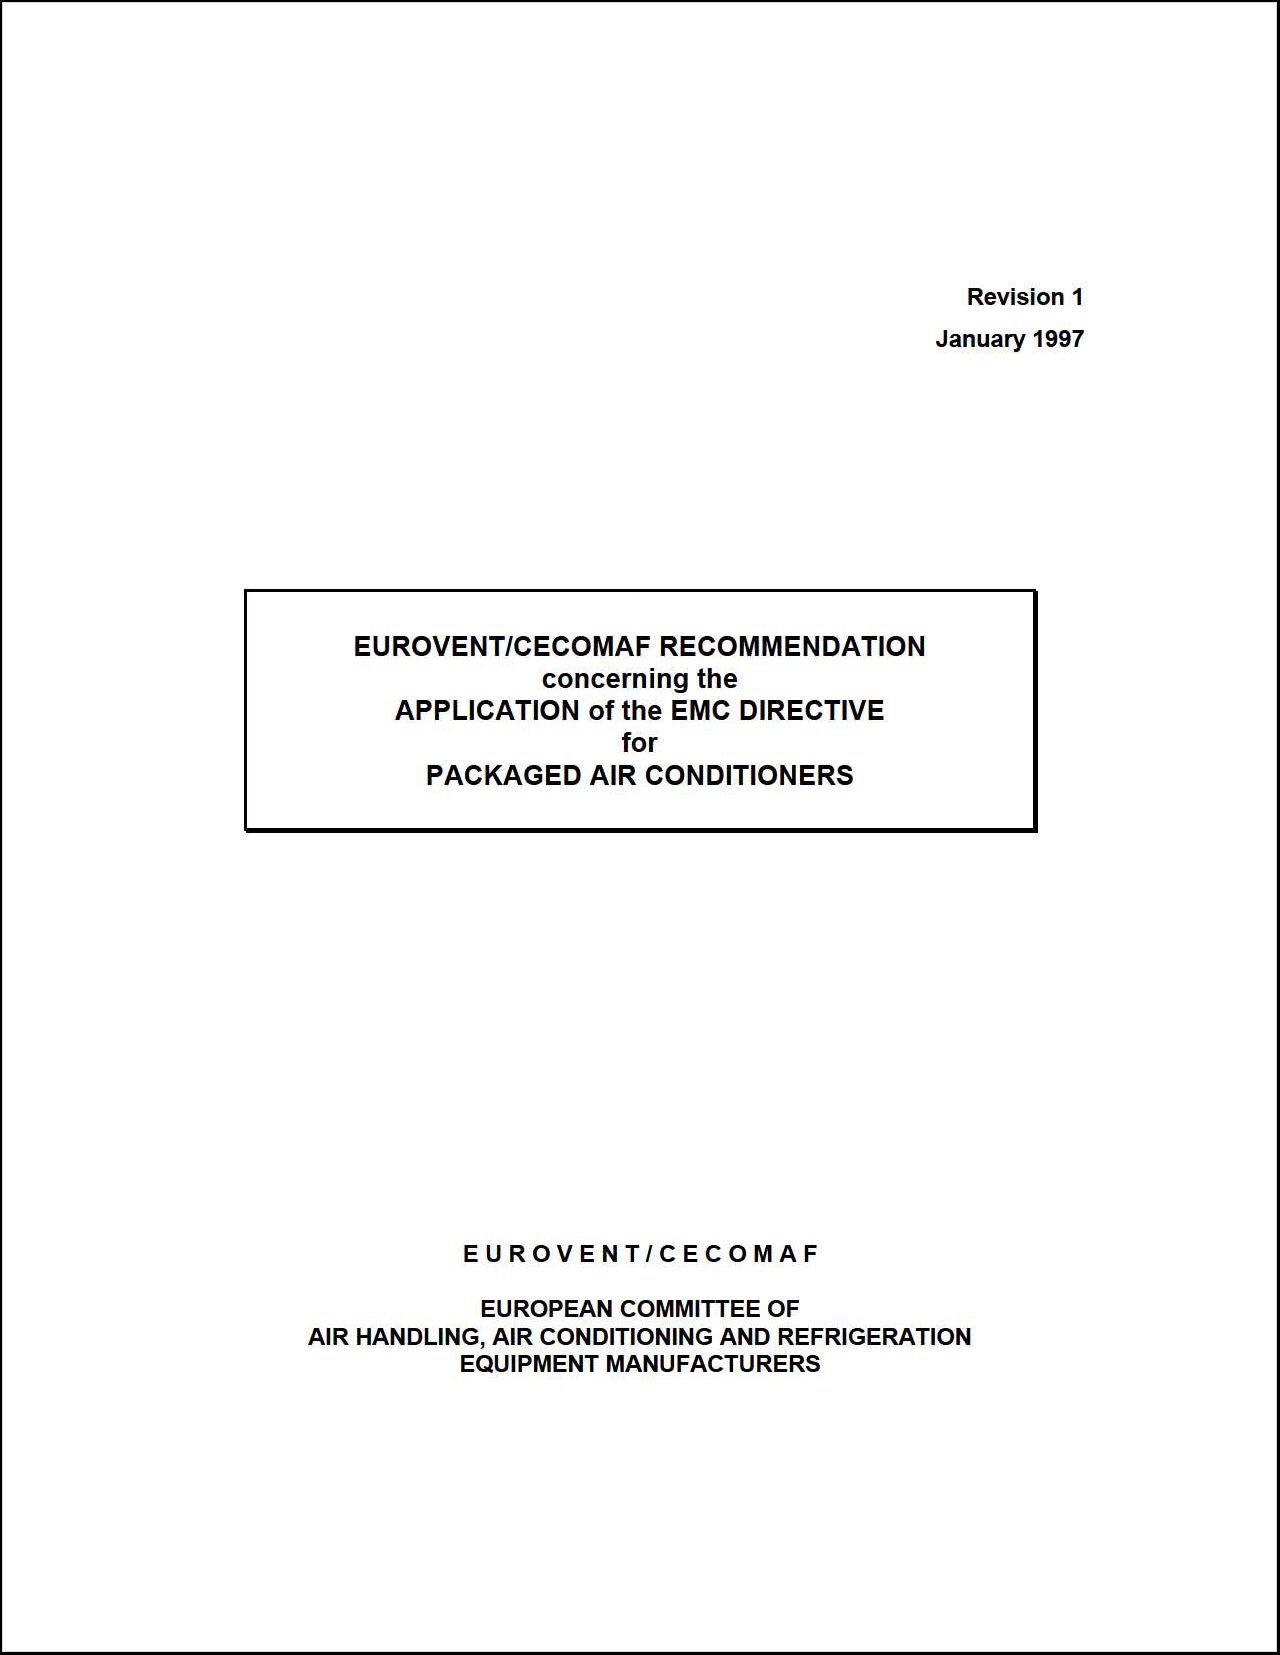 1997 - Application of the EMC Directive for Packaged Air Conditioners